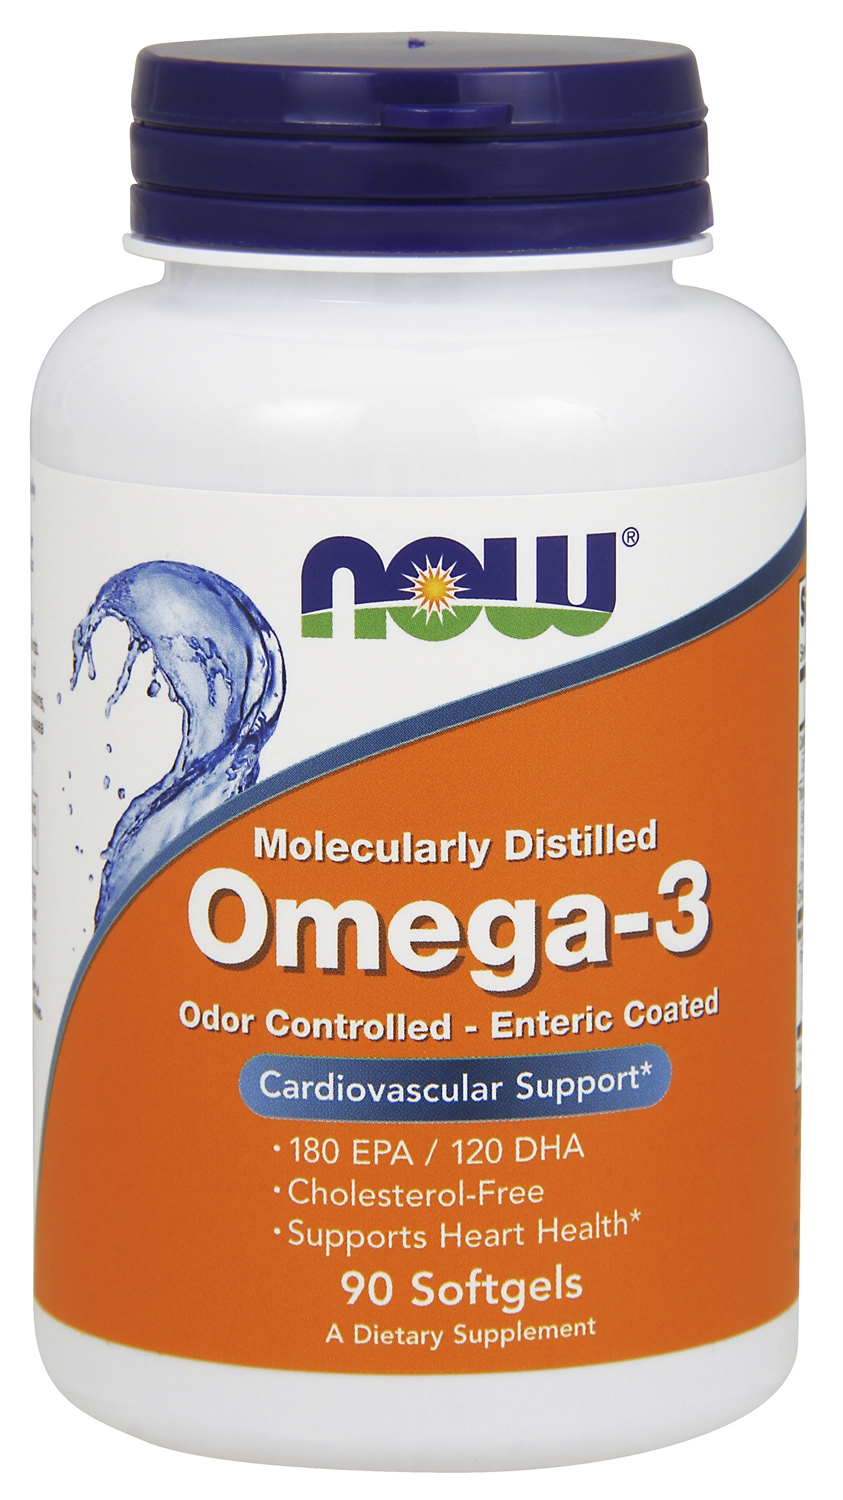 Omega-3 (Molecularly Distilled) 1000 mg 180 sgels by NOW